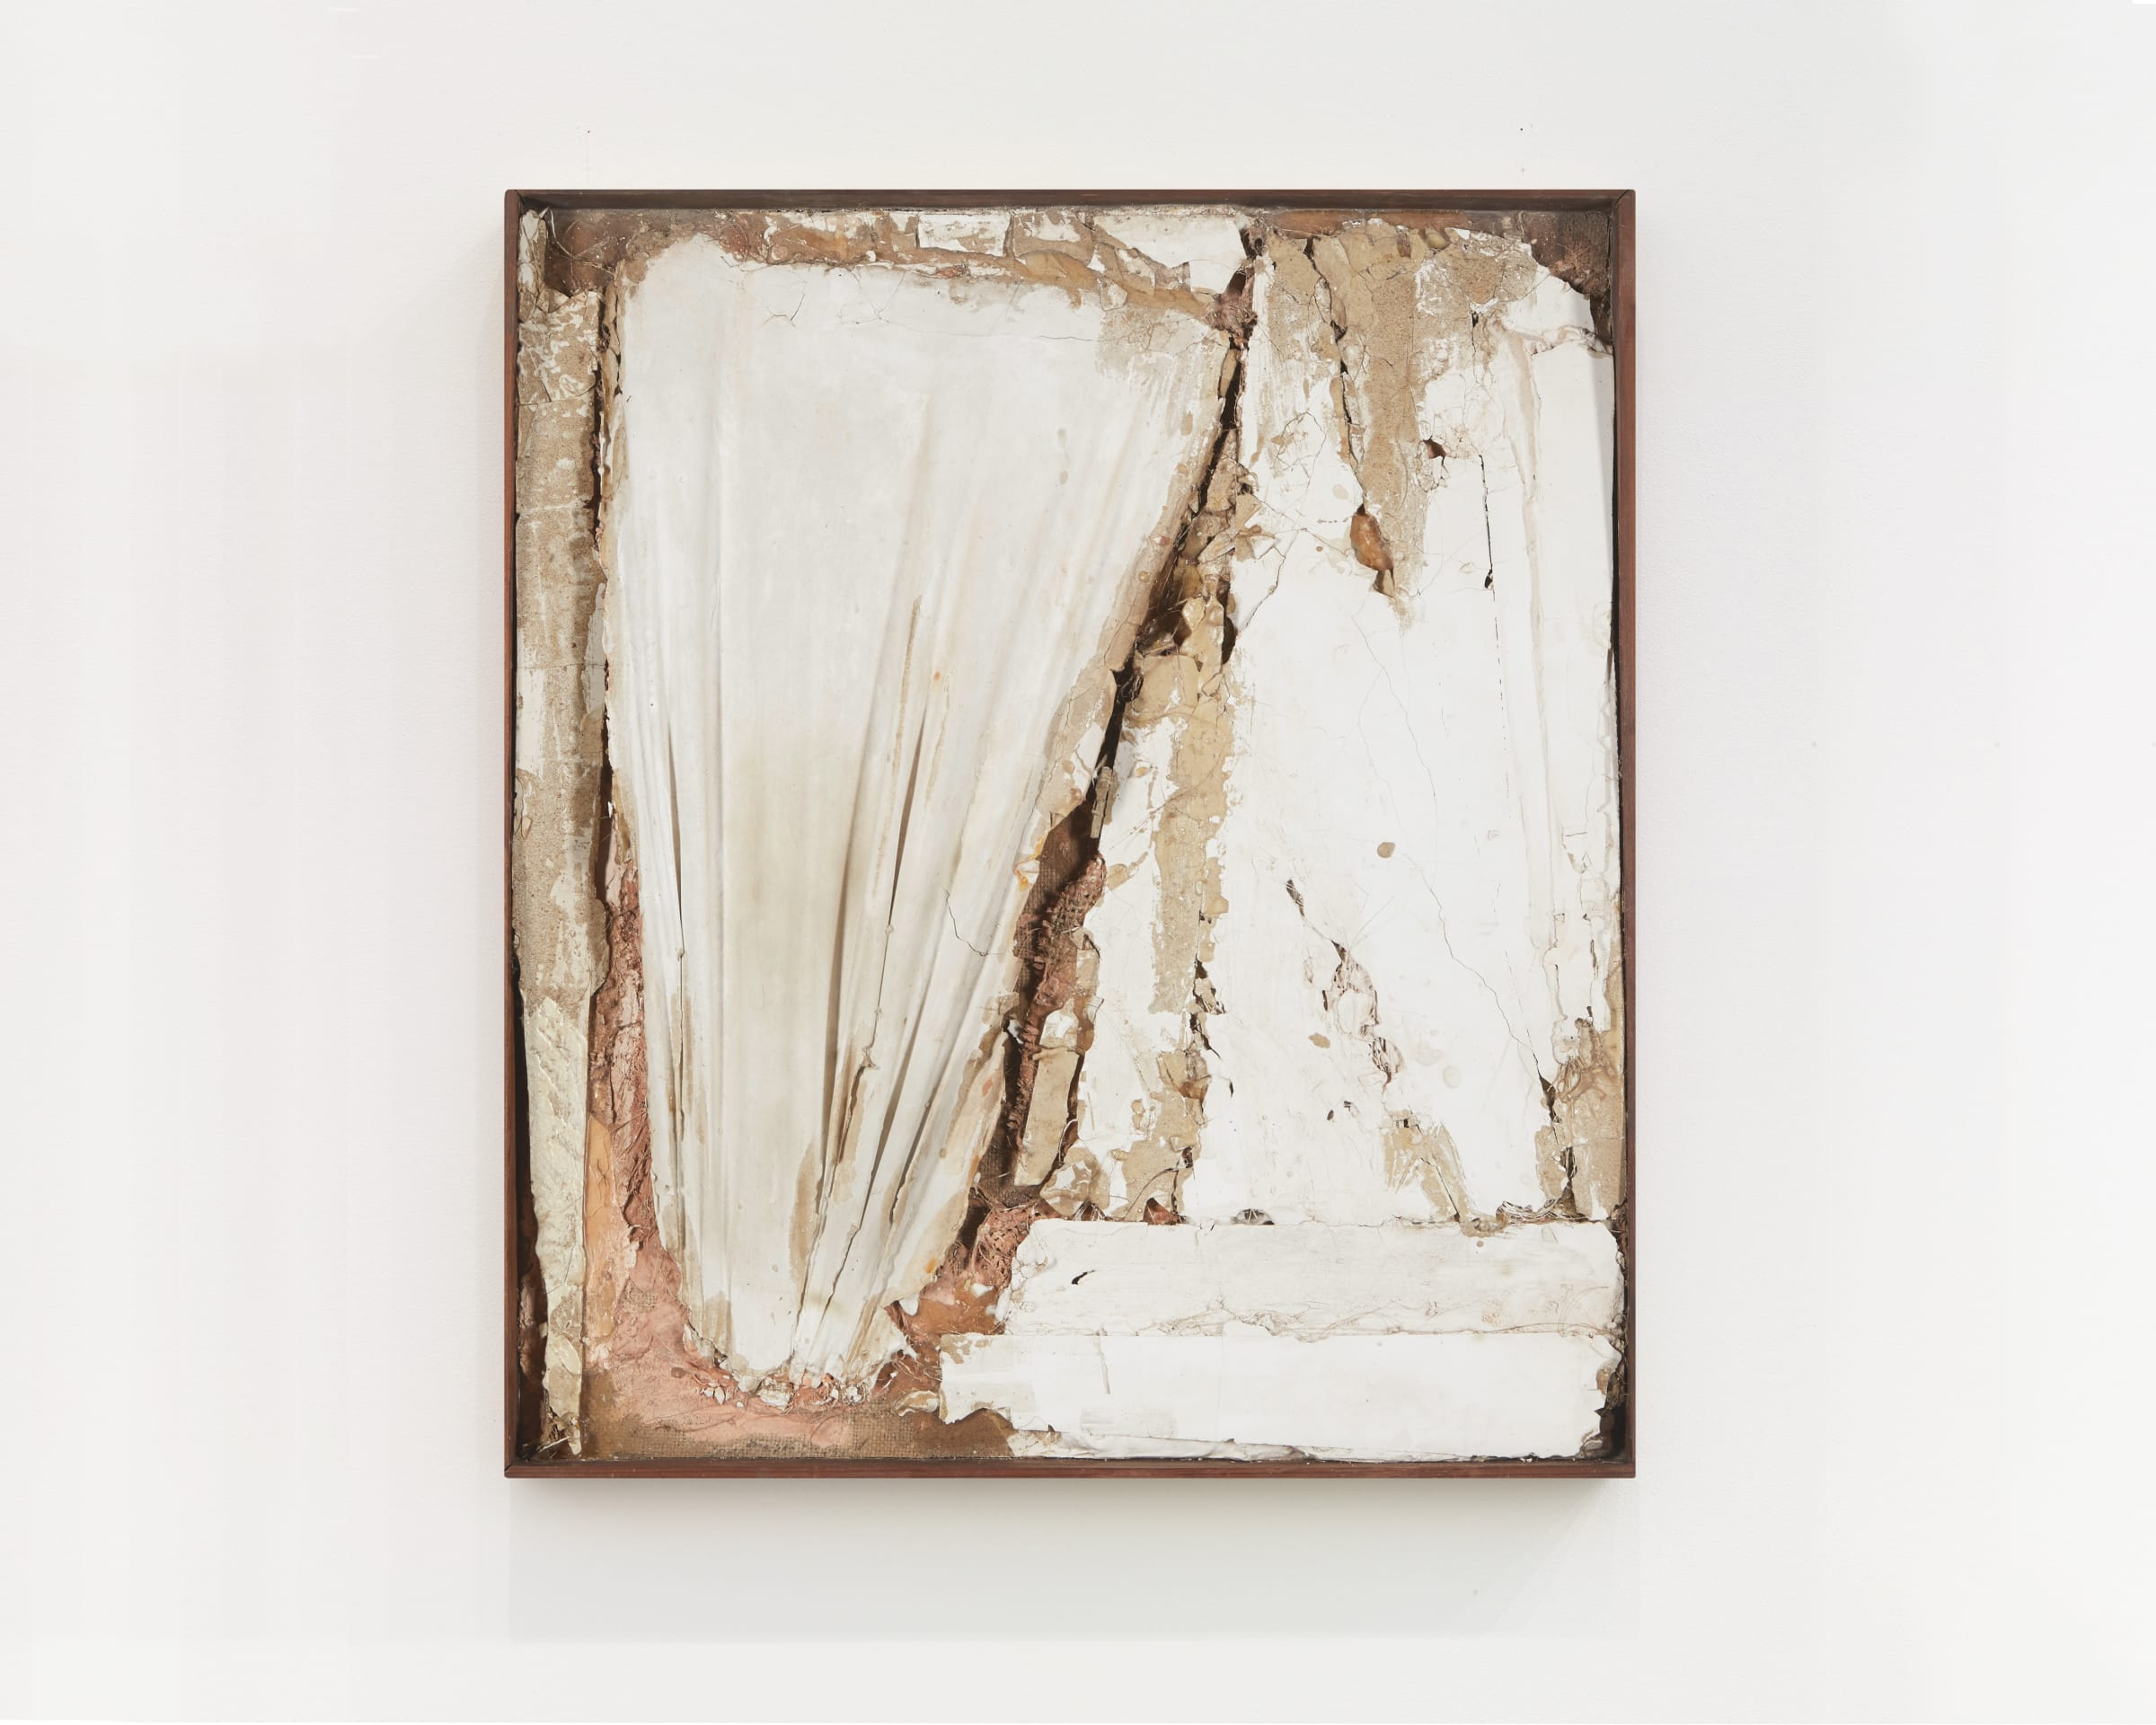 "<span class=""link fancybox-details-link""><a href=""/exhibitions/574/works/artworks_standalone10178/"">View Detail Page</a></span><div class=""medium"">Mixed media: Found materials bound with plaster with a wooden frame</div>